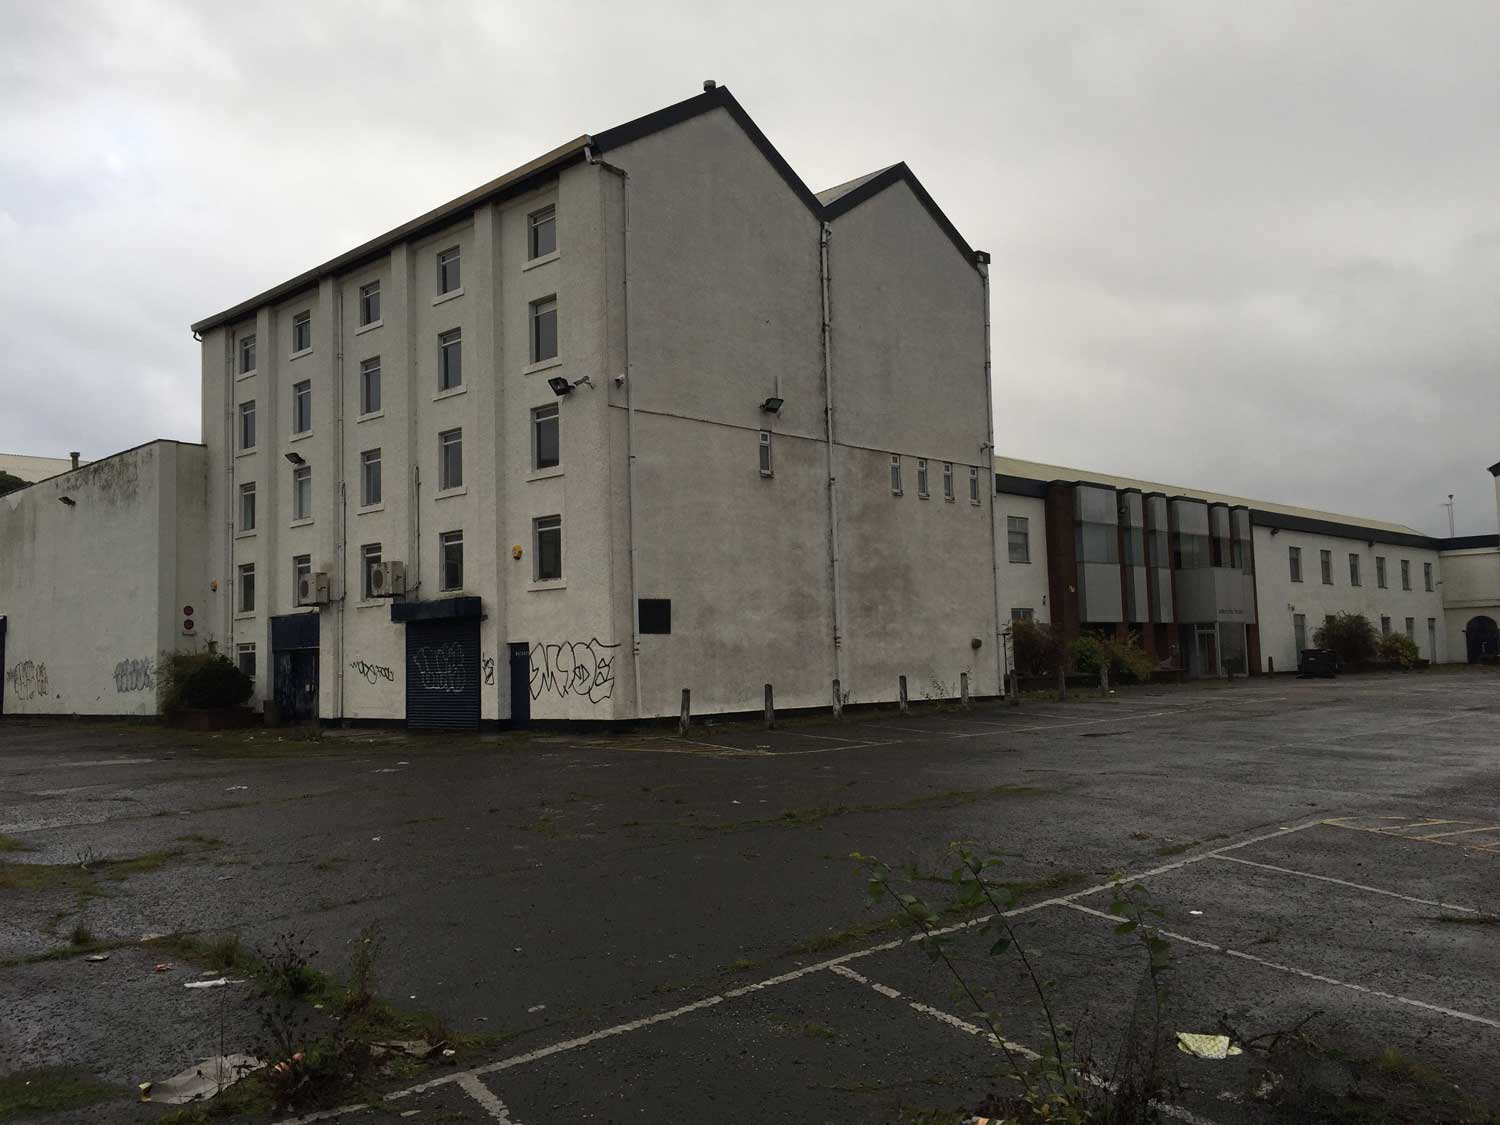 The warehouse at MacDowall street had been vacant for years and looked derelict